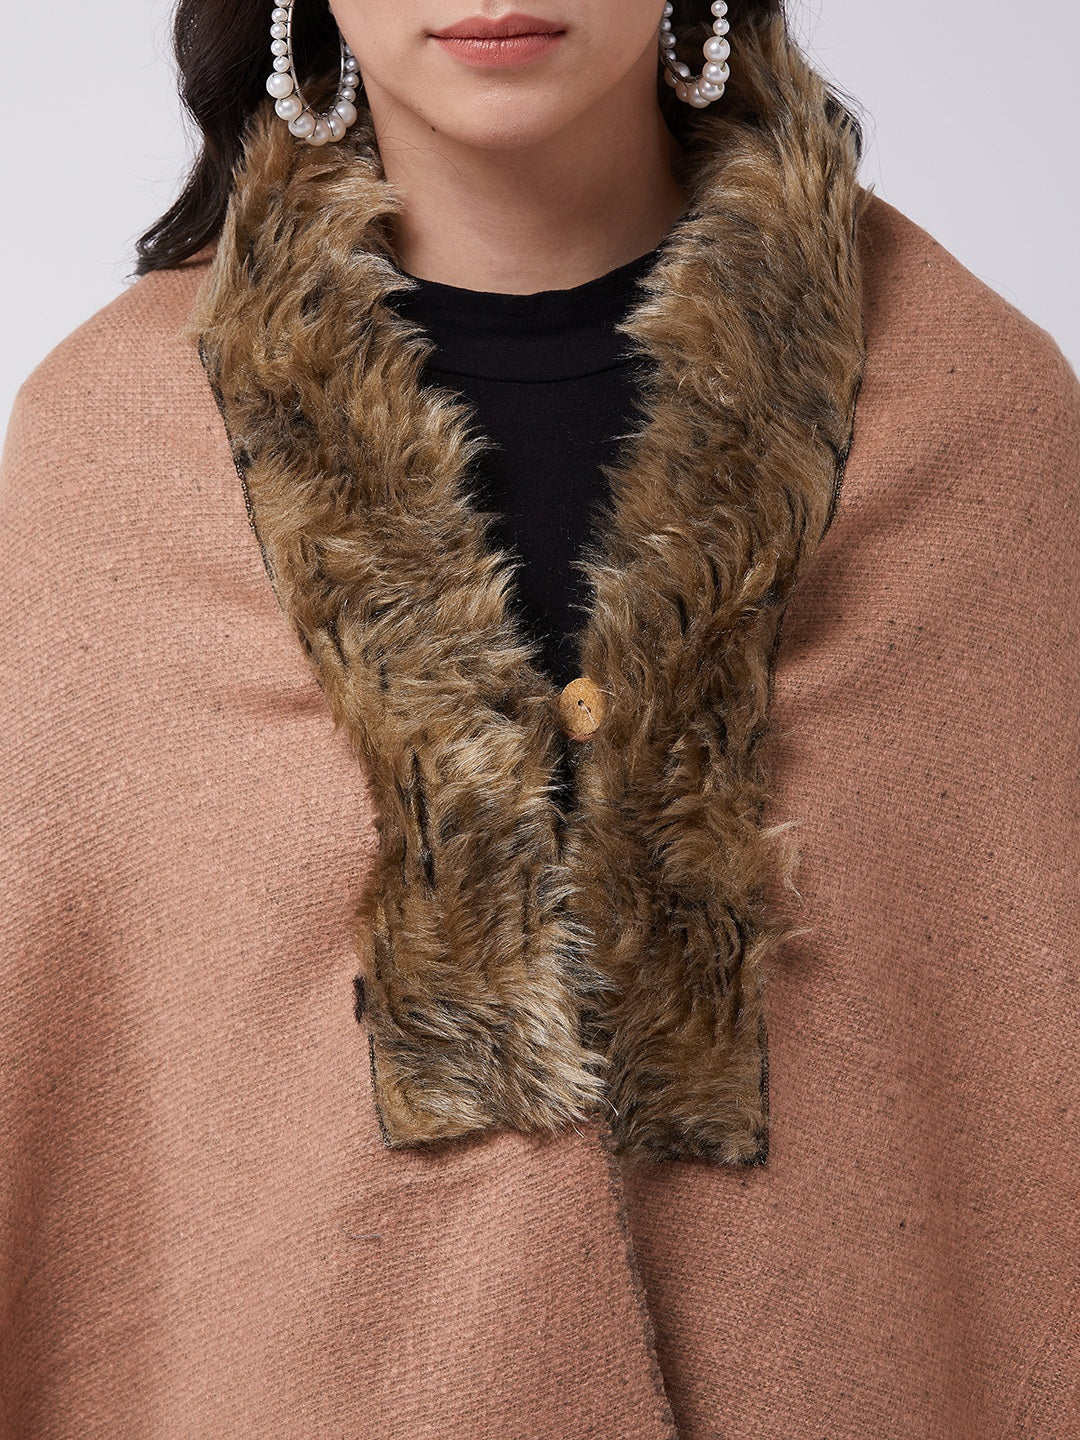 Peach Winter Fur Cape